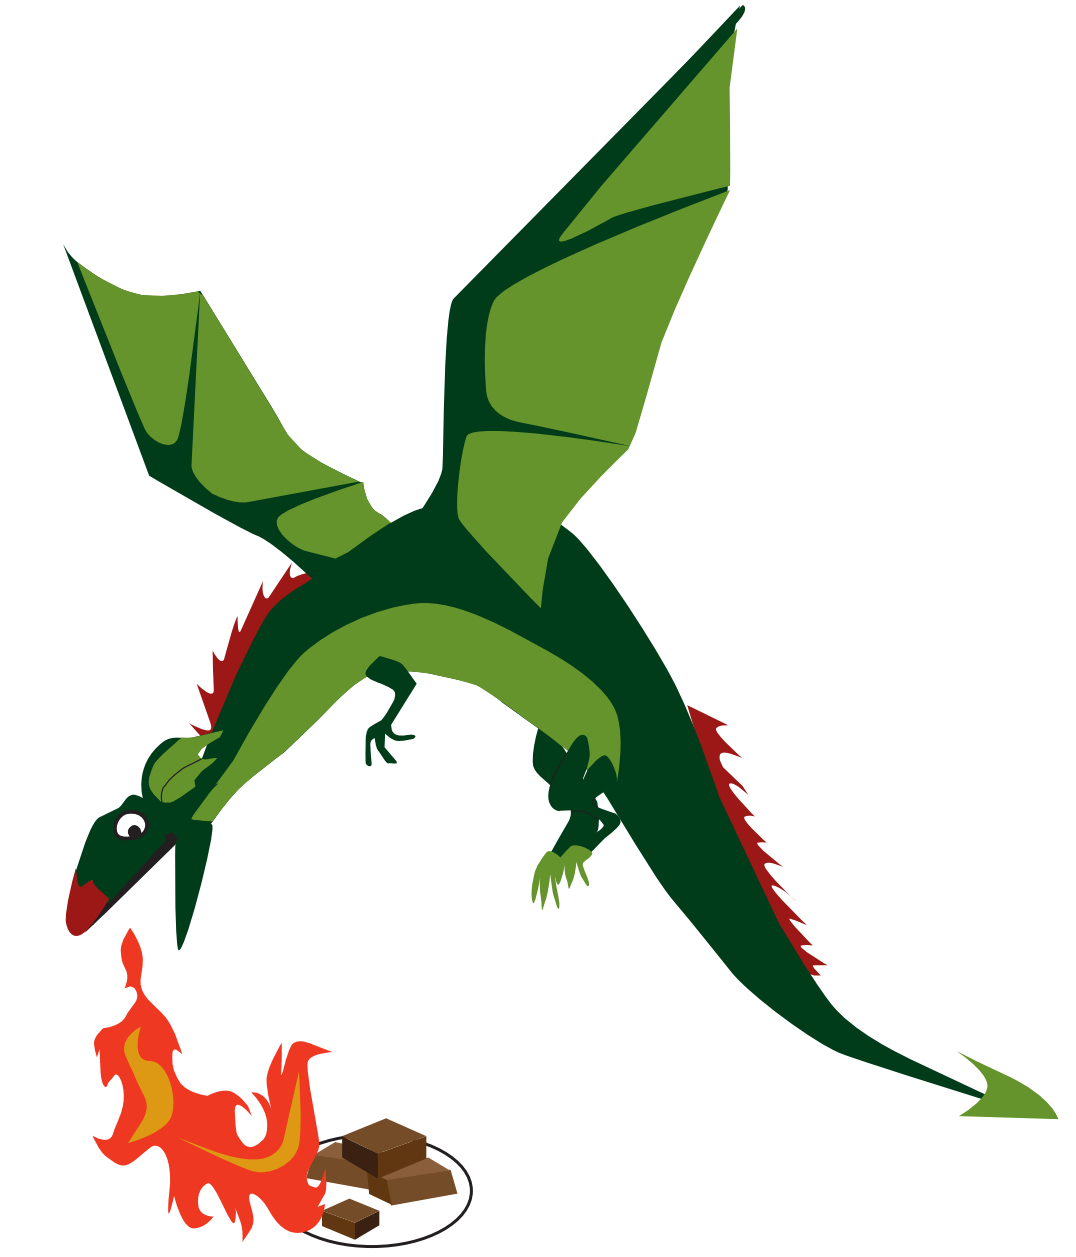 An illustration of a dragon breathing fire on some brownies